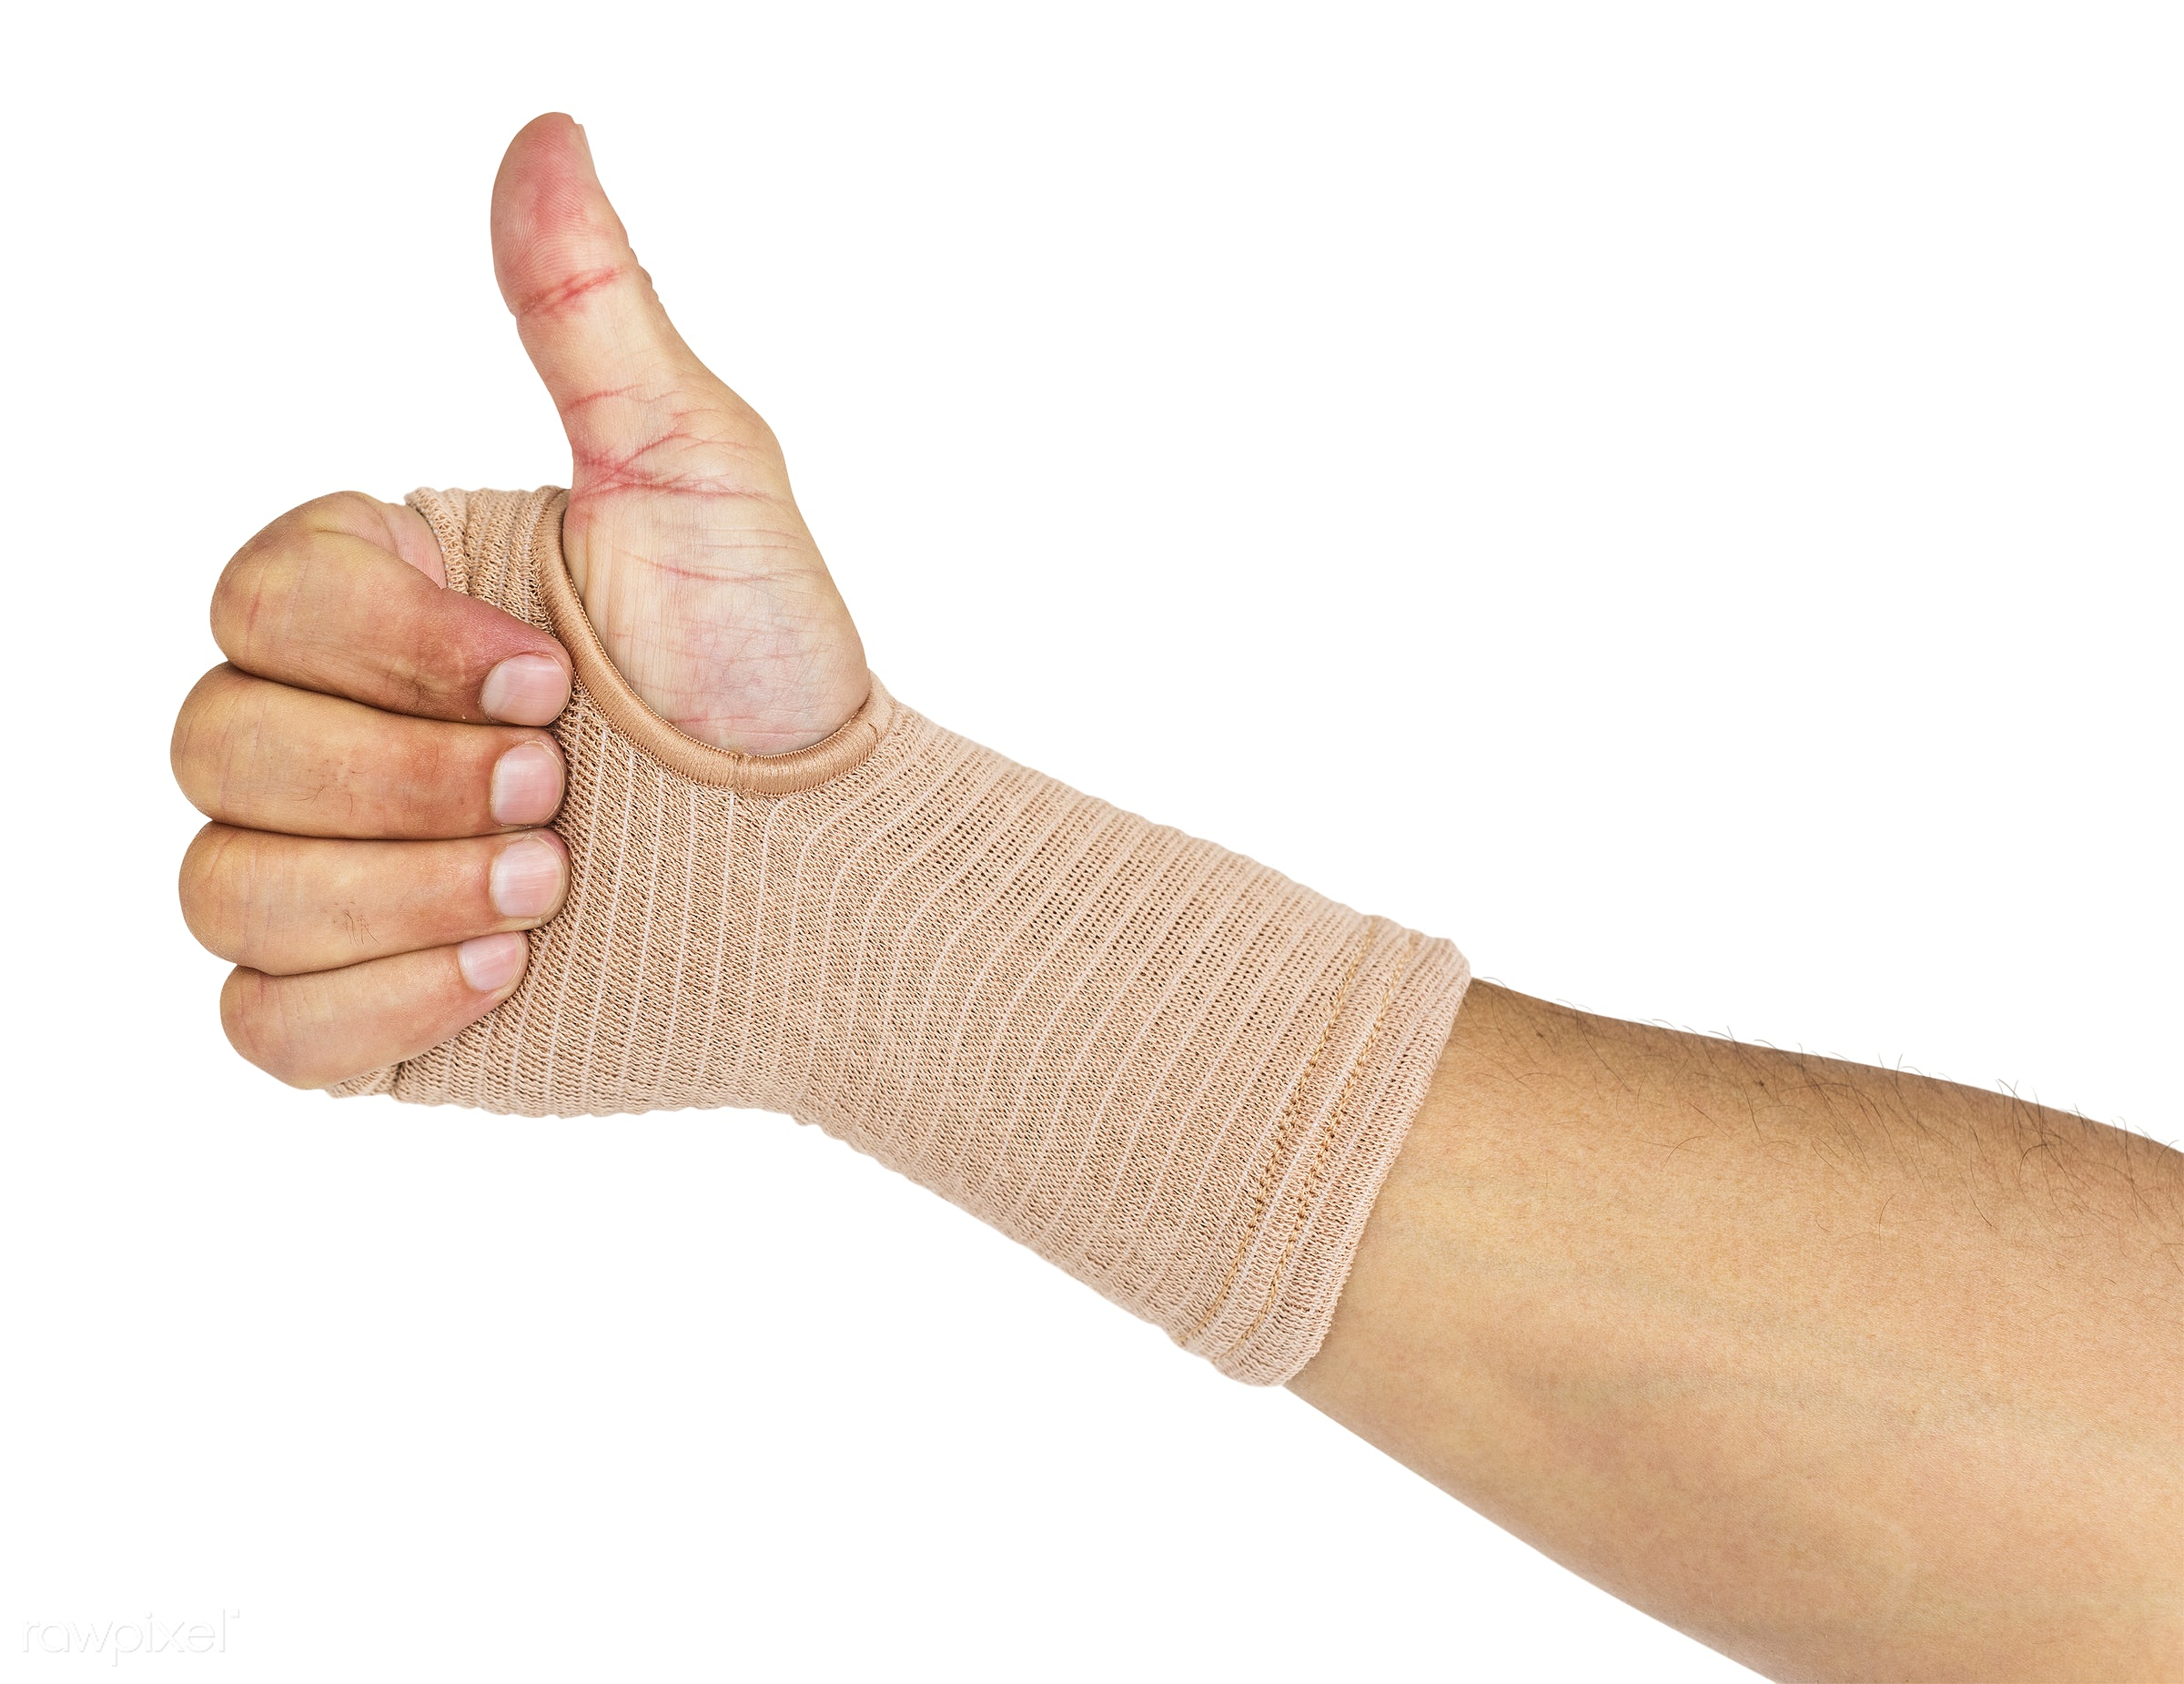 accident, pain, hand, medical, bandage, protection, ill, damage, suffer, painful, health, recovery, broken, hurt, injury,...